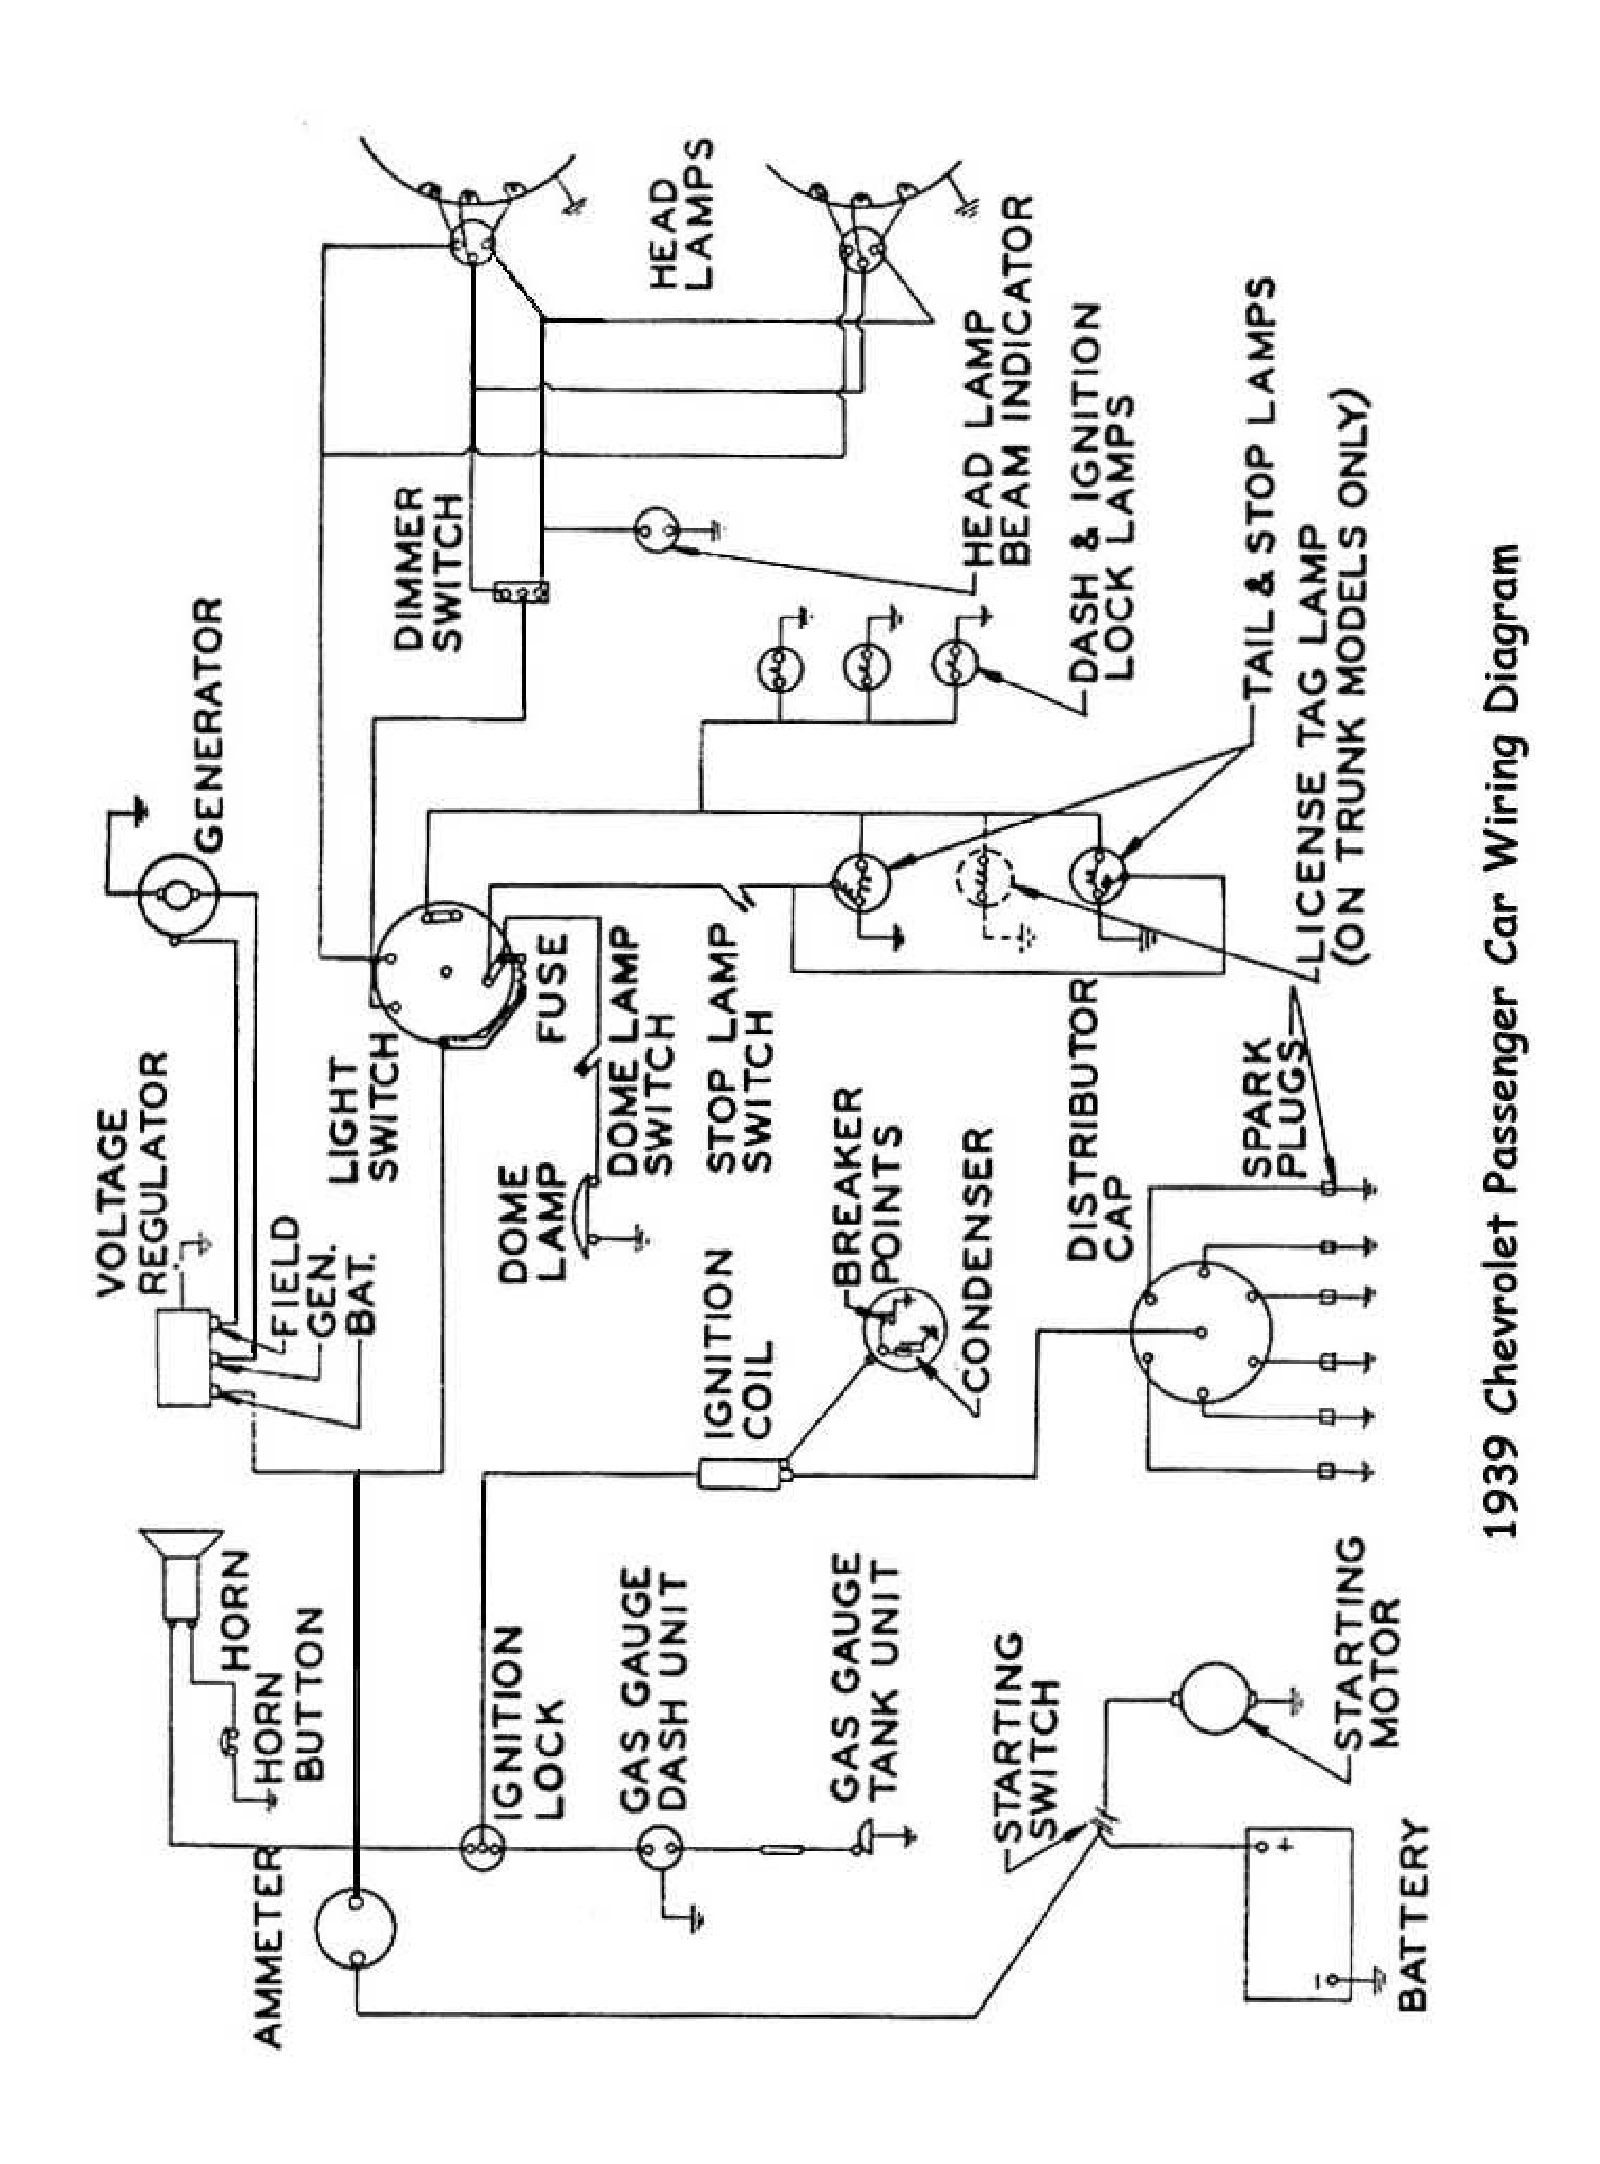 millivolt thermostat wiring diagram Download-Millivolt Thermostat Connected Basic Honeywell Wiring 2 Wires Two Wire Programmable And Diagram 15-k